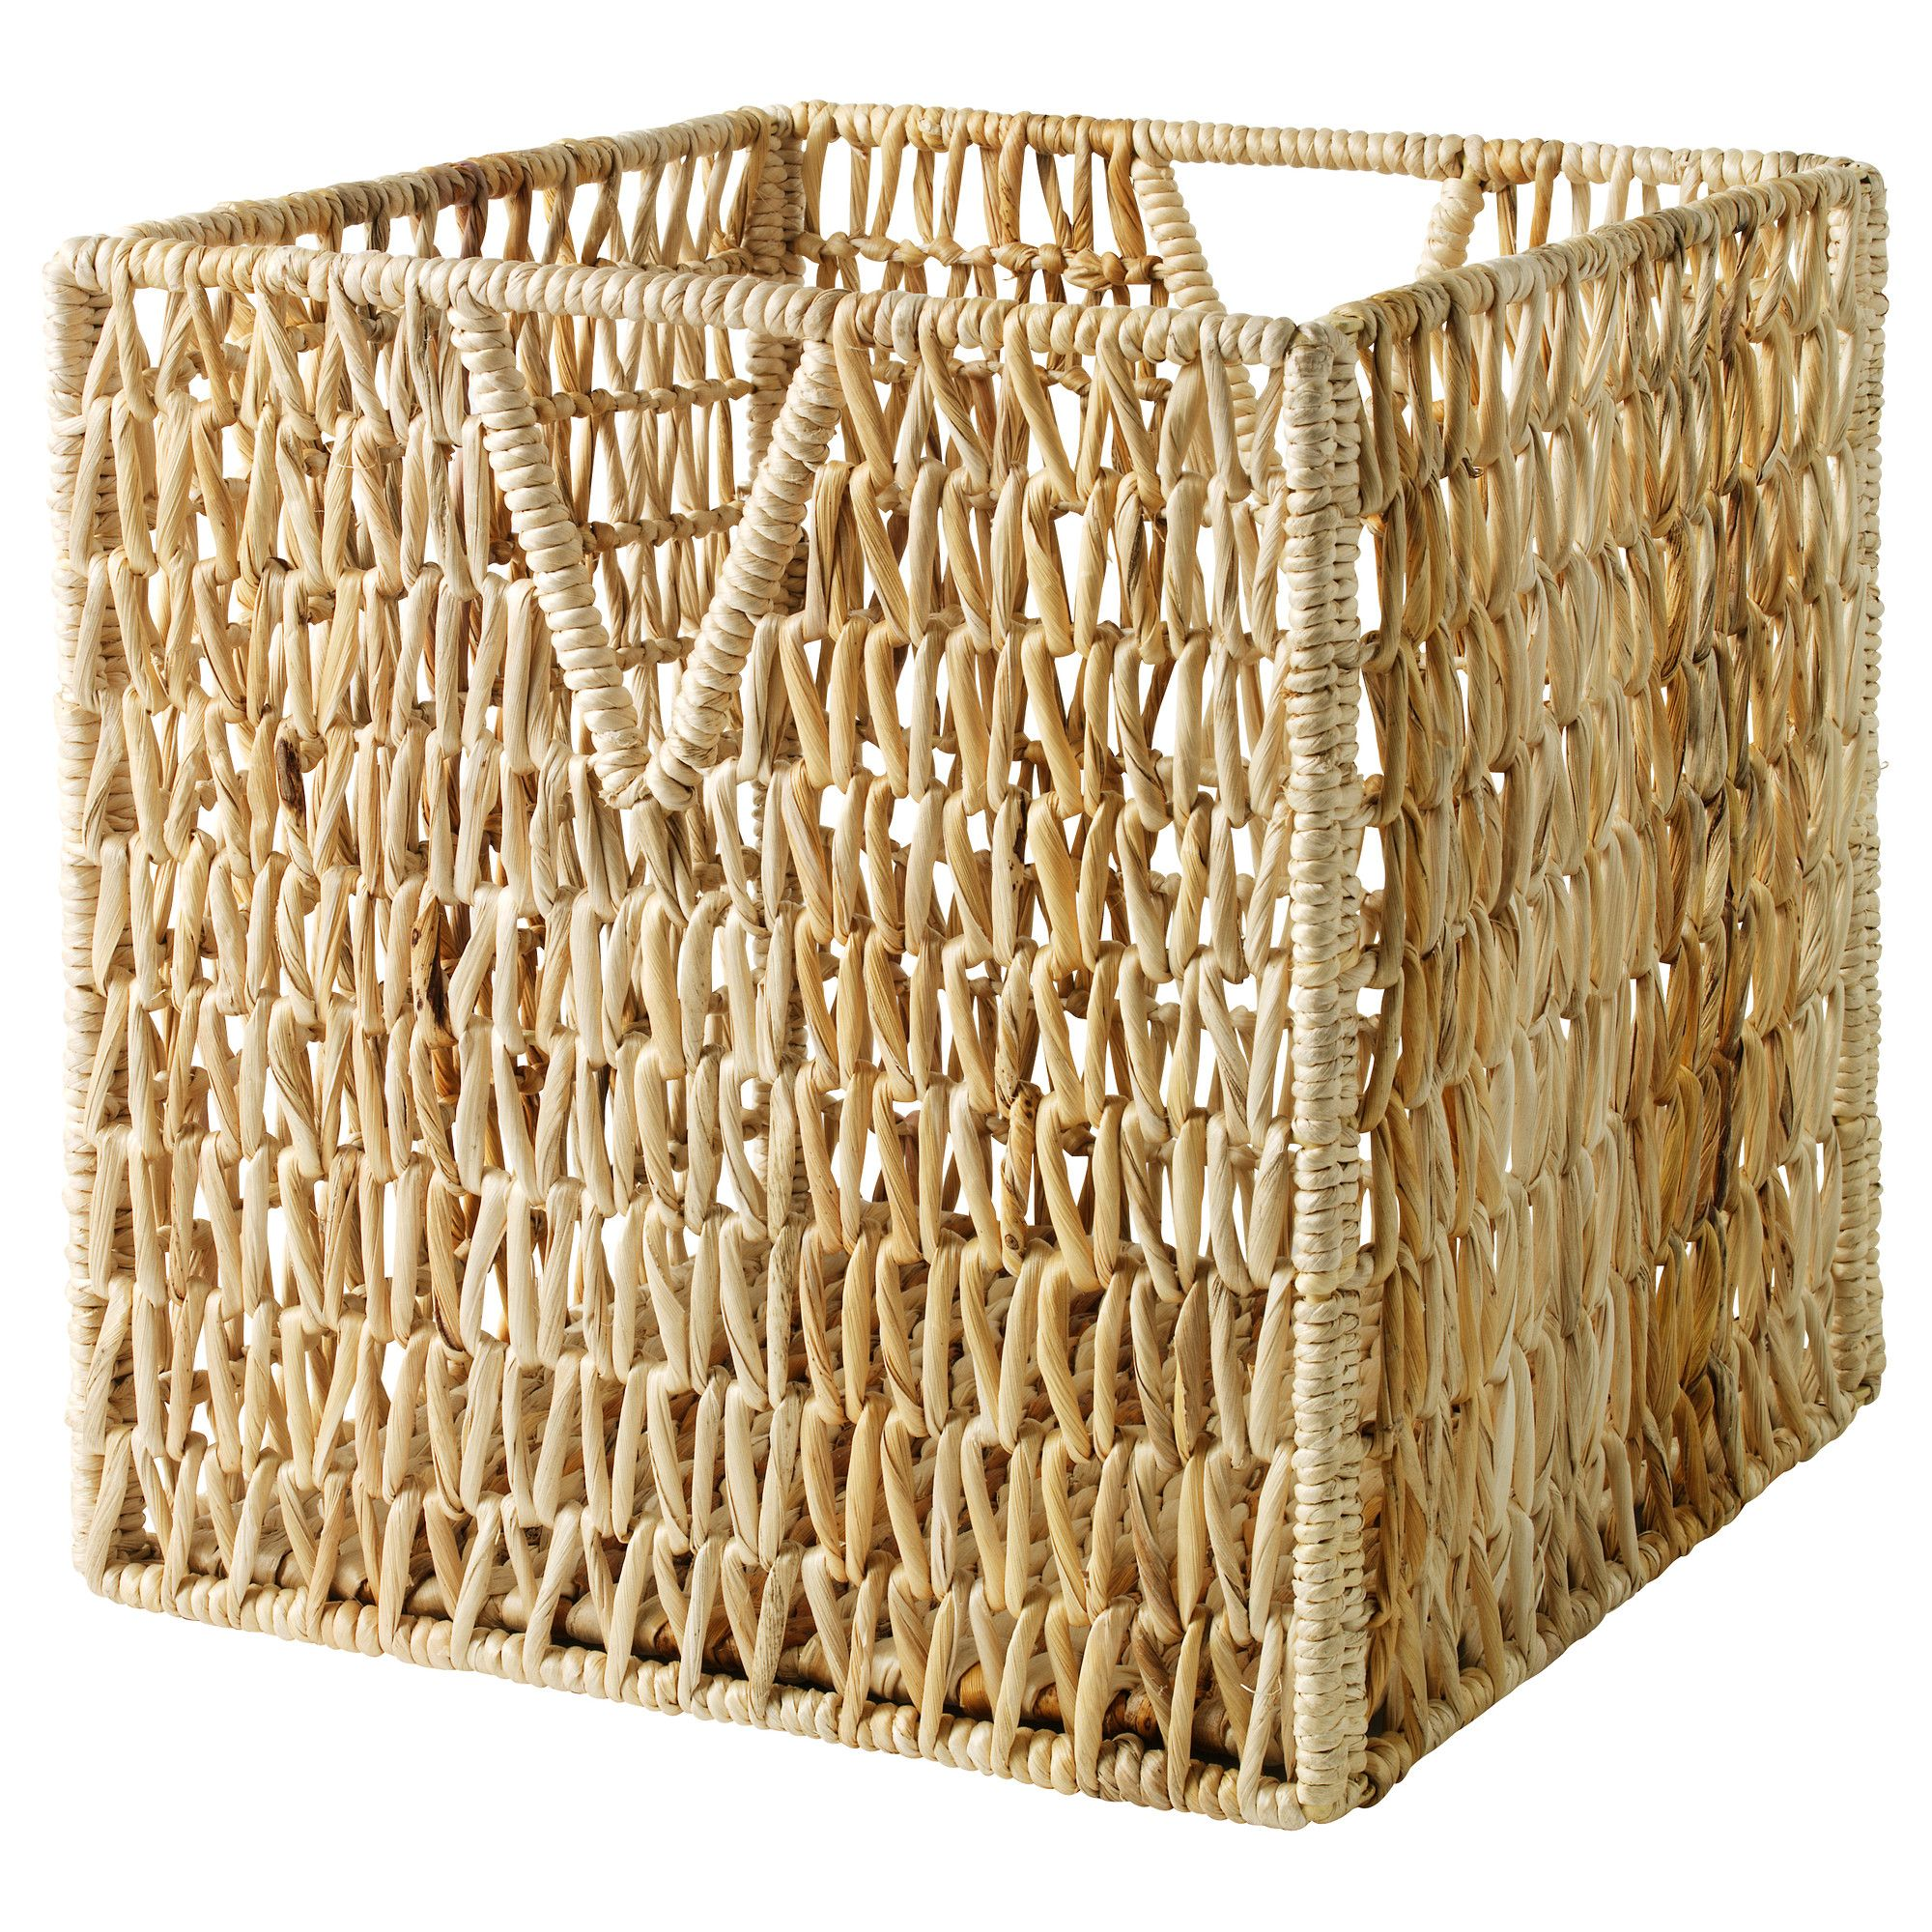 storage furniture with baskets ikea. PJÄS Basket - IKEA These Fit In The Cubicles Of Expedit Bookcases And Do A Great Job Concealing Messy Stuff Like Filing That Needs To Be Done! Storage Furniture With Baskets Ikea O